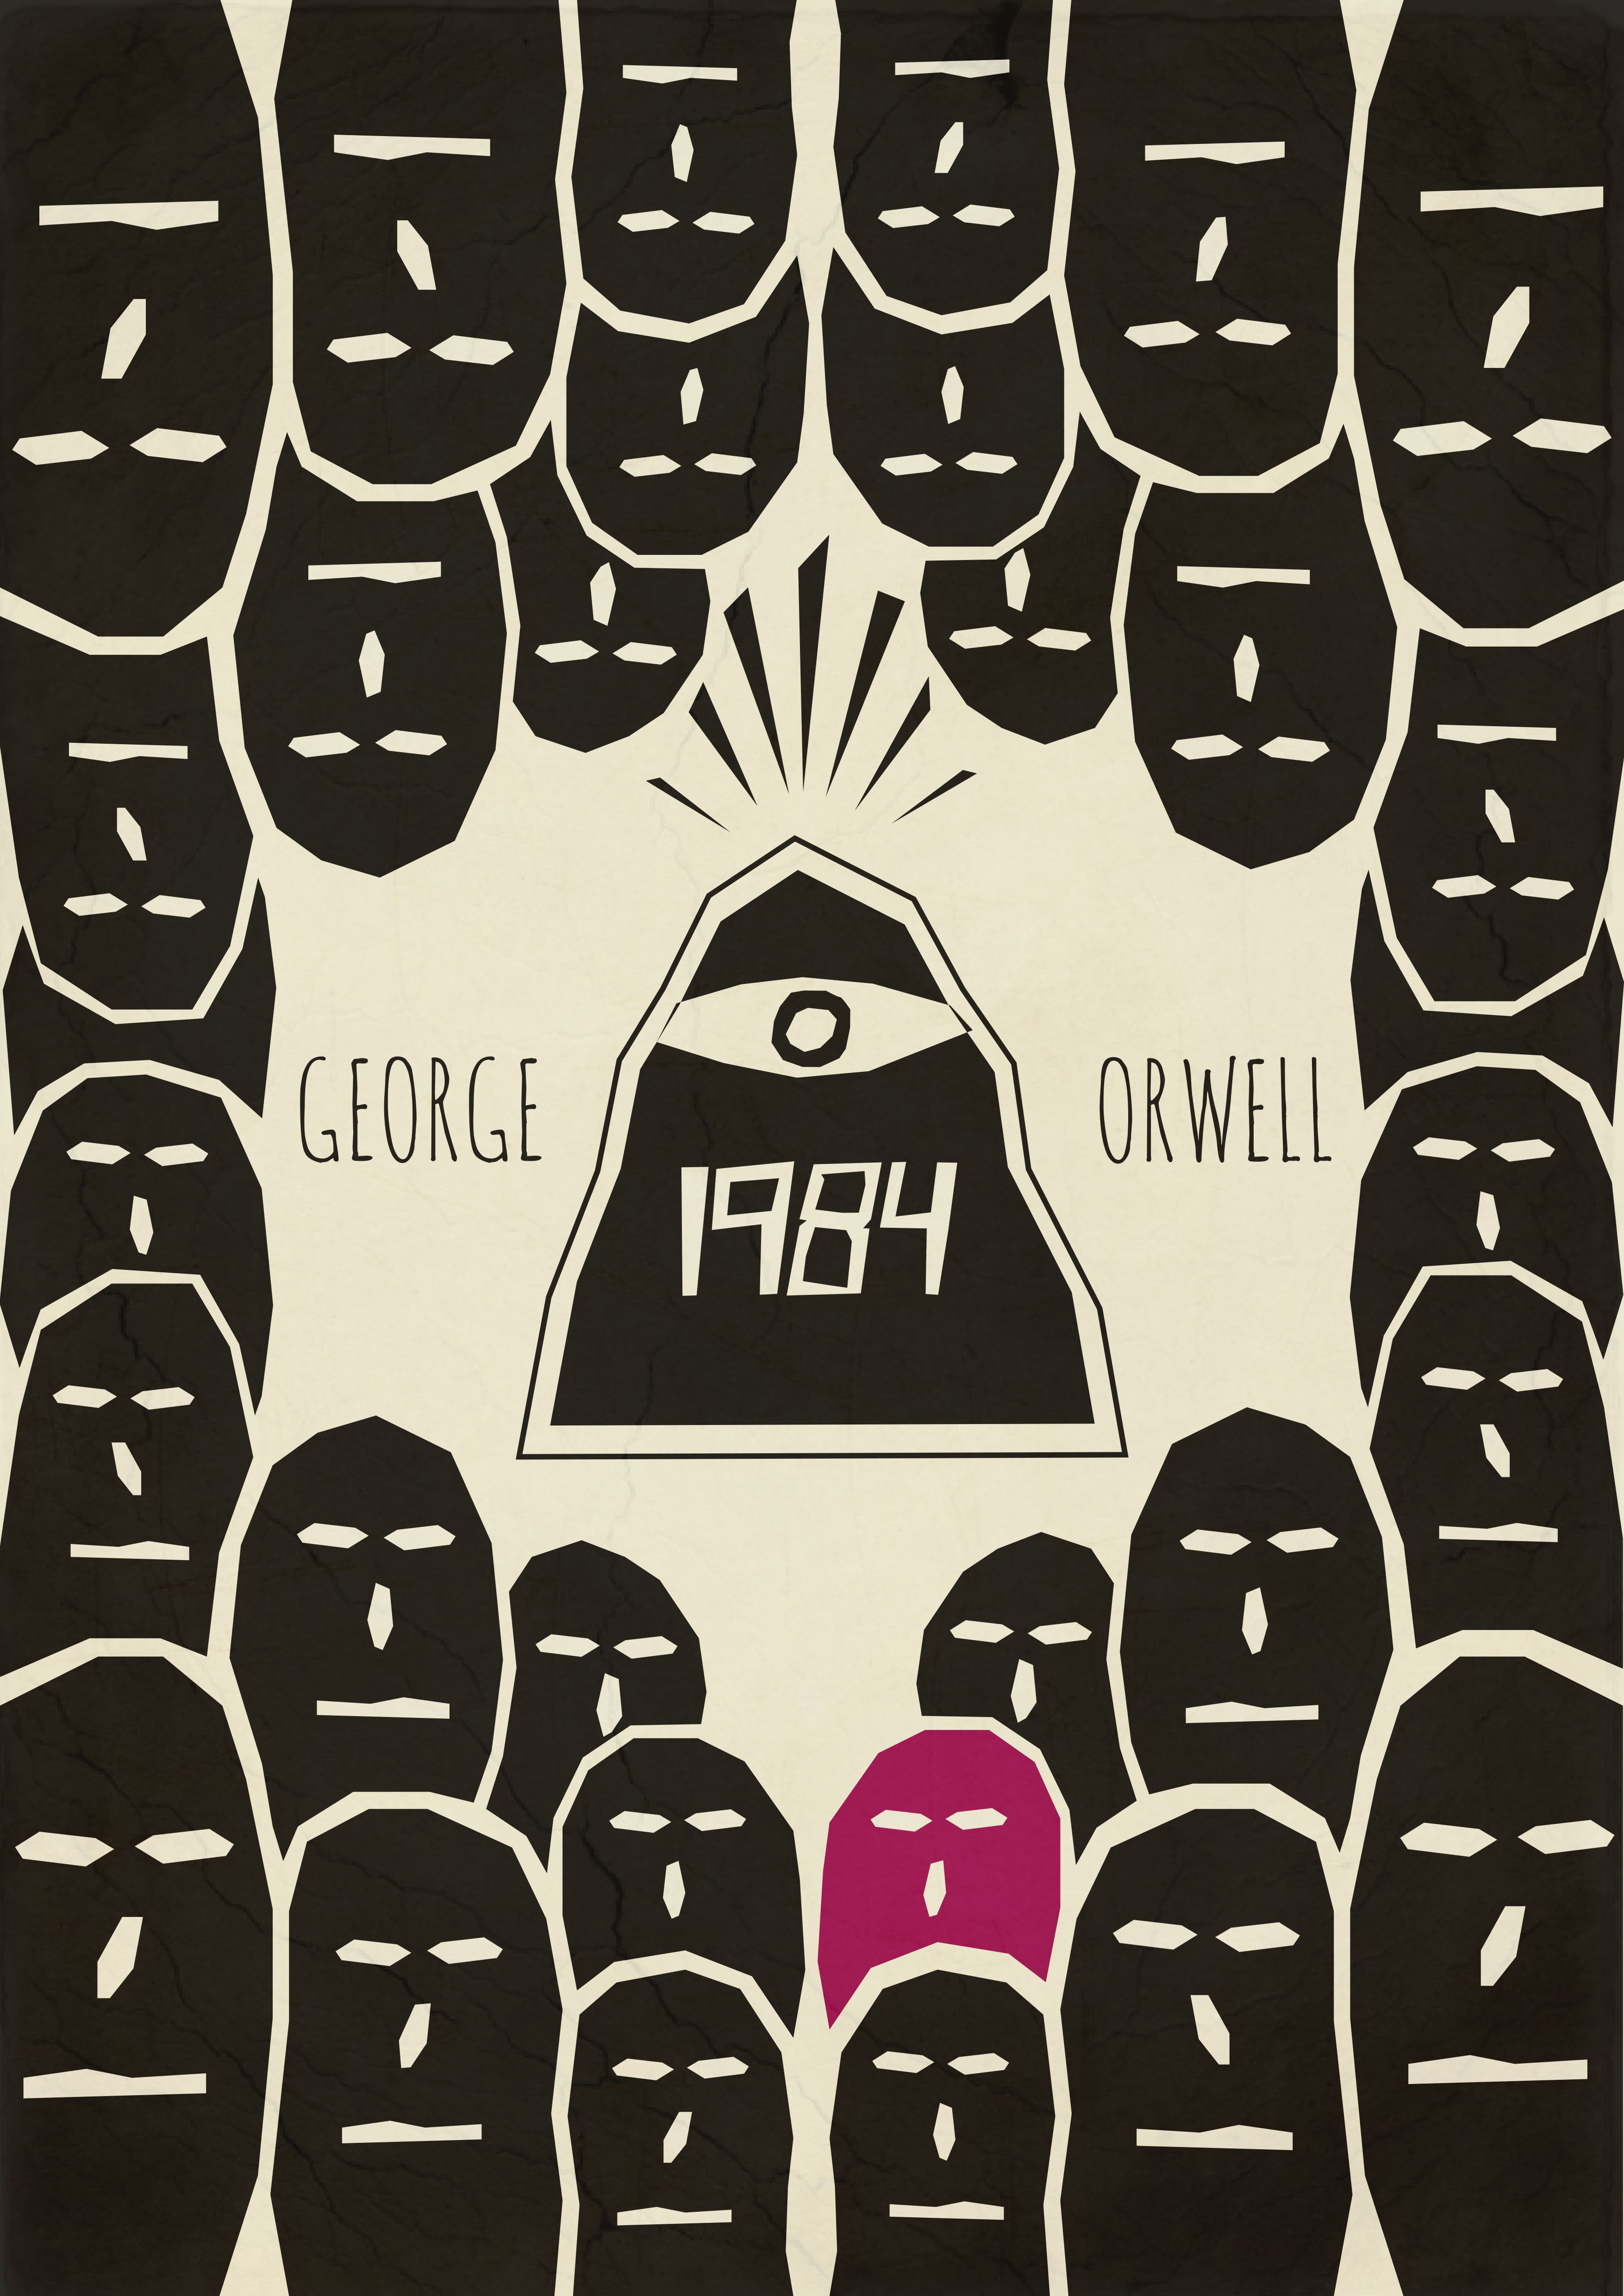 an analysis of the irony concept in the novel 1984 by george orwell In george orwell's dystopian classic 1984, doublethink is the act of holding,  simultaneously, two opposite, individually exclusive ideas or opinions and believi.